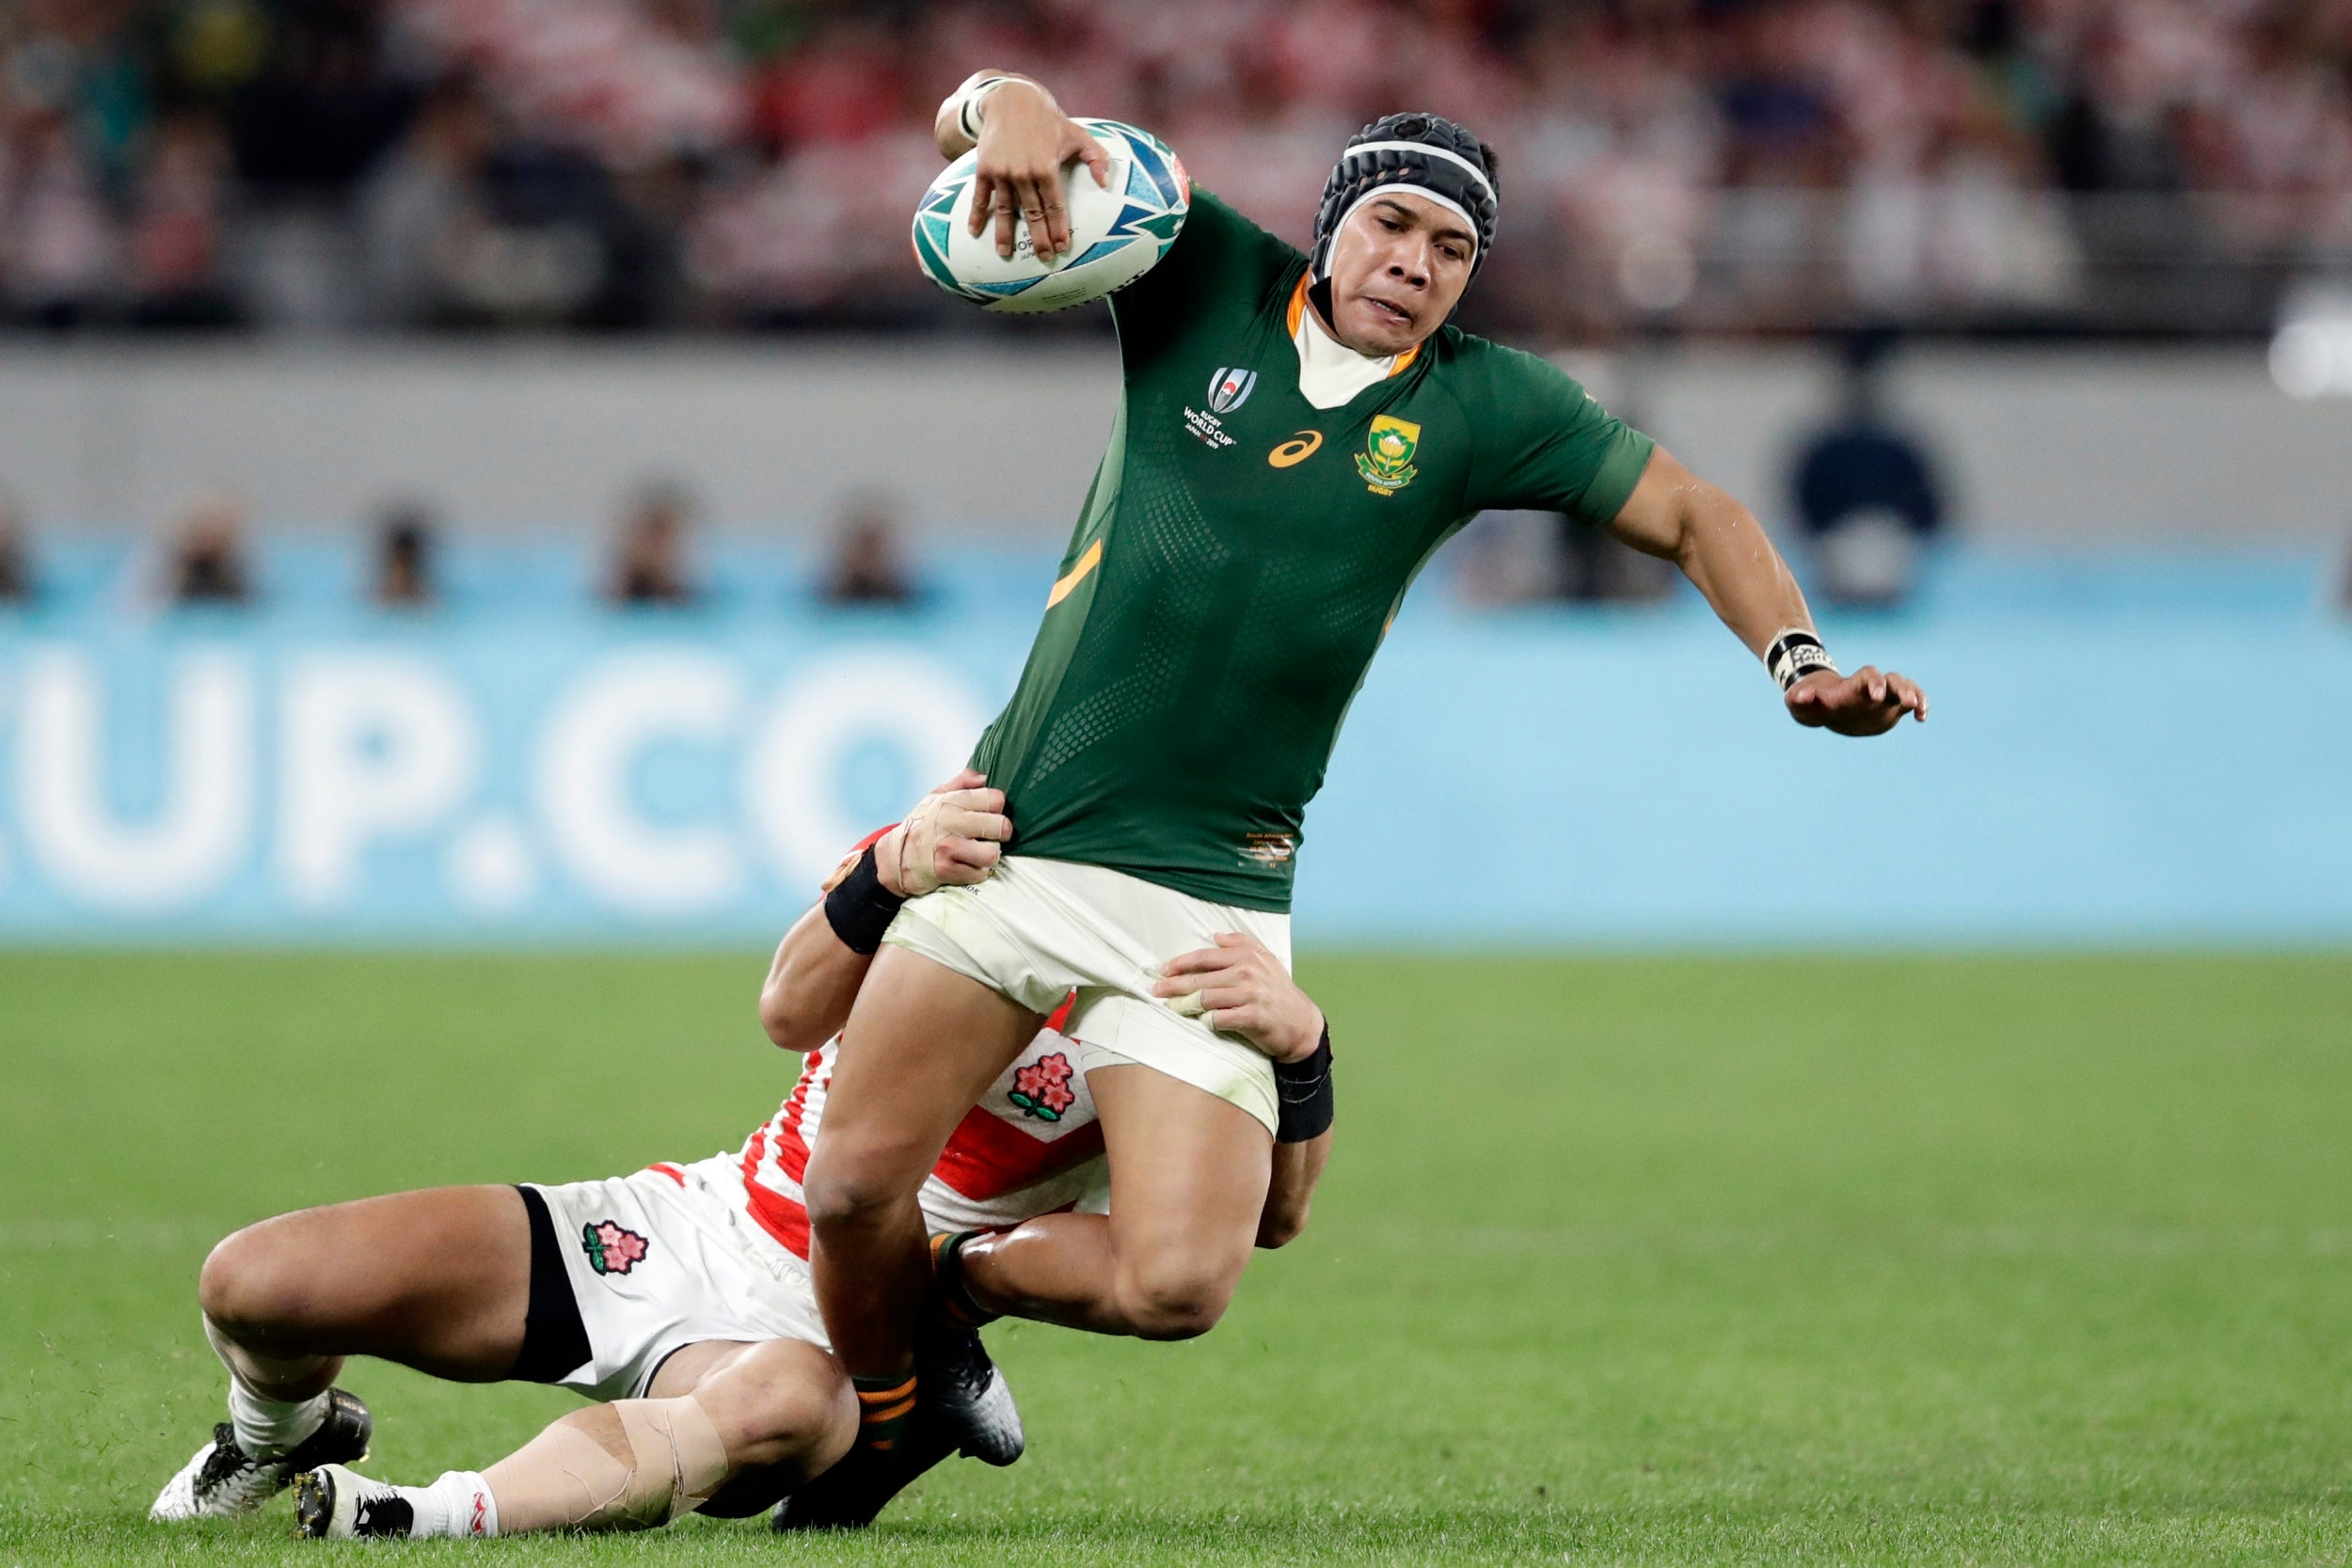 England vs South Africa team news: Cheslin Kolbe returns as Rassie Erasmus names side for Rugby World Cup final